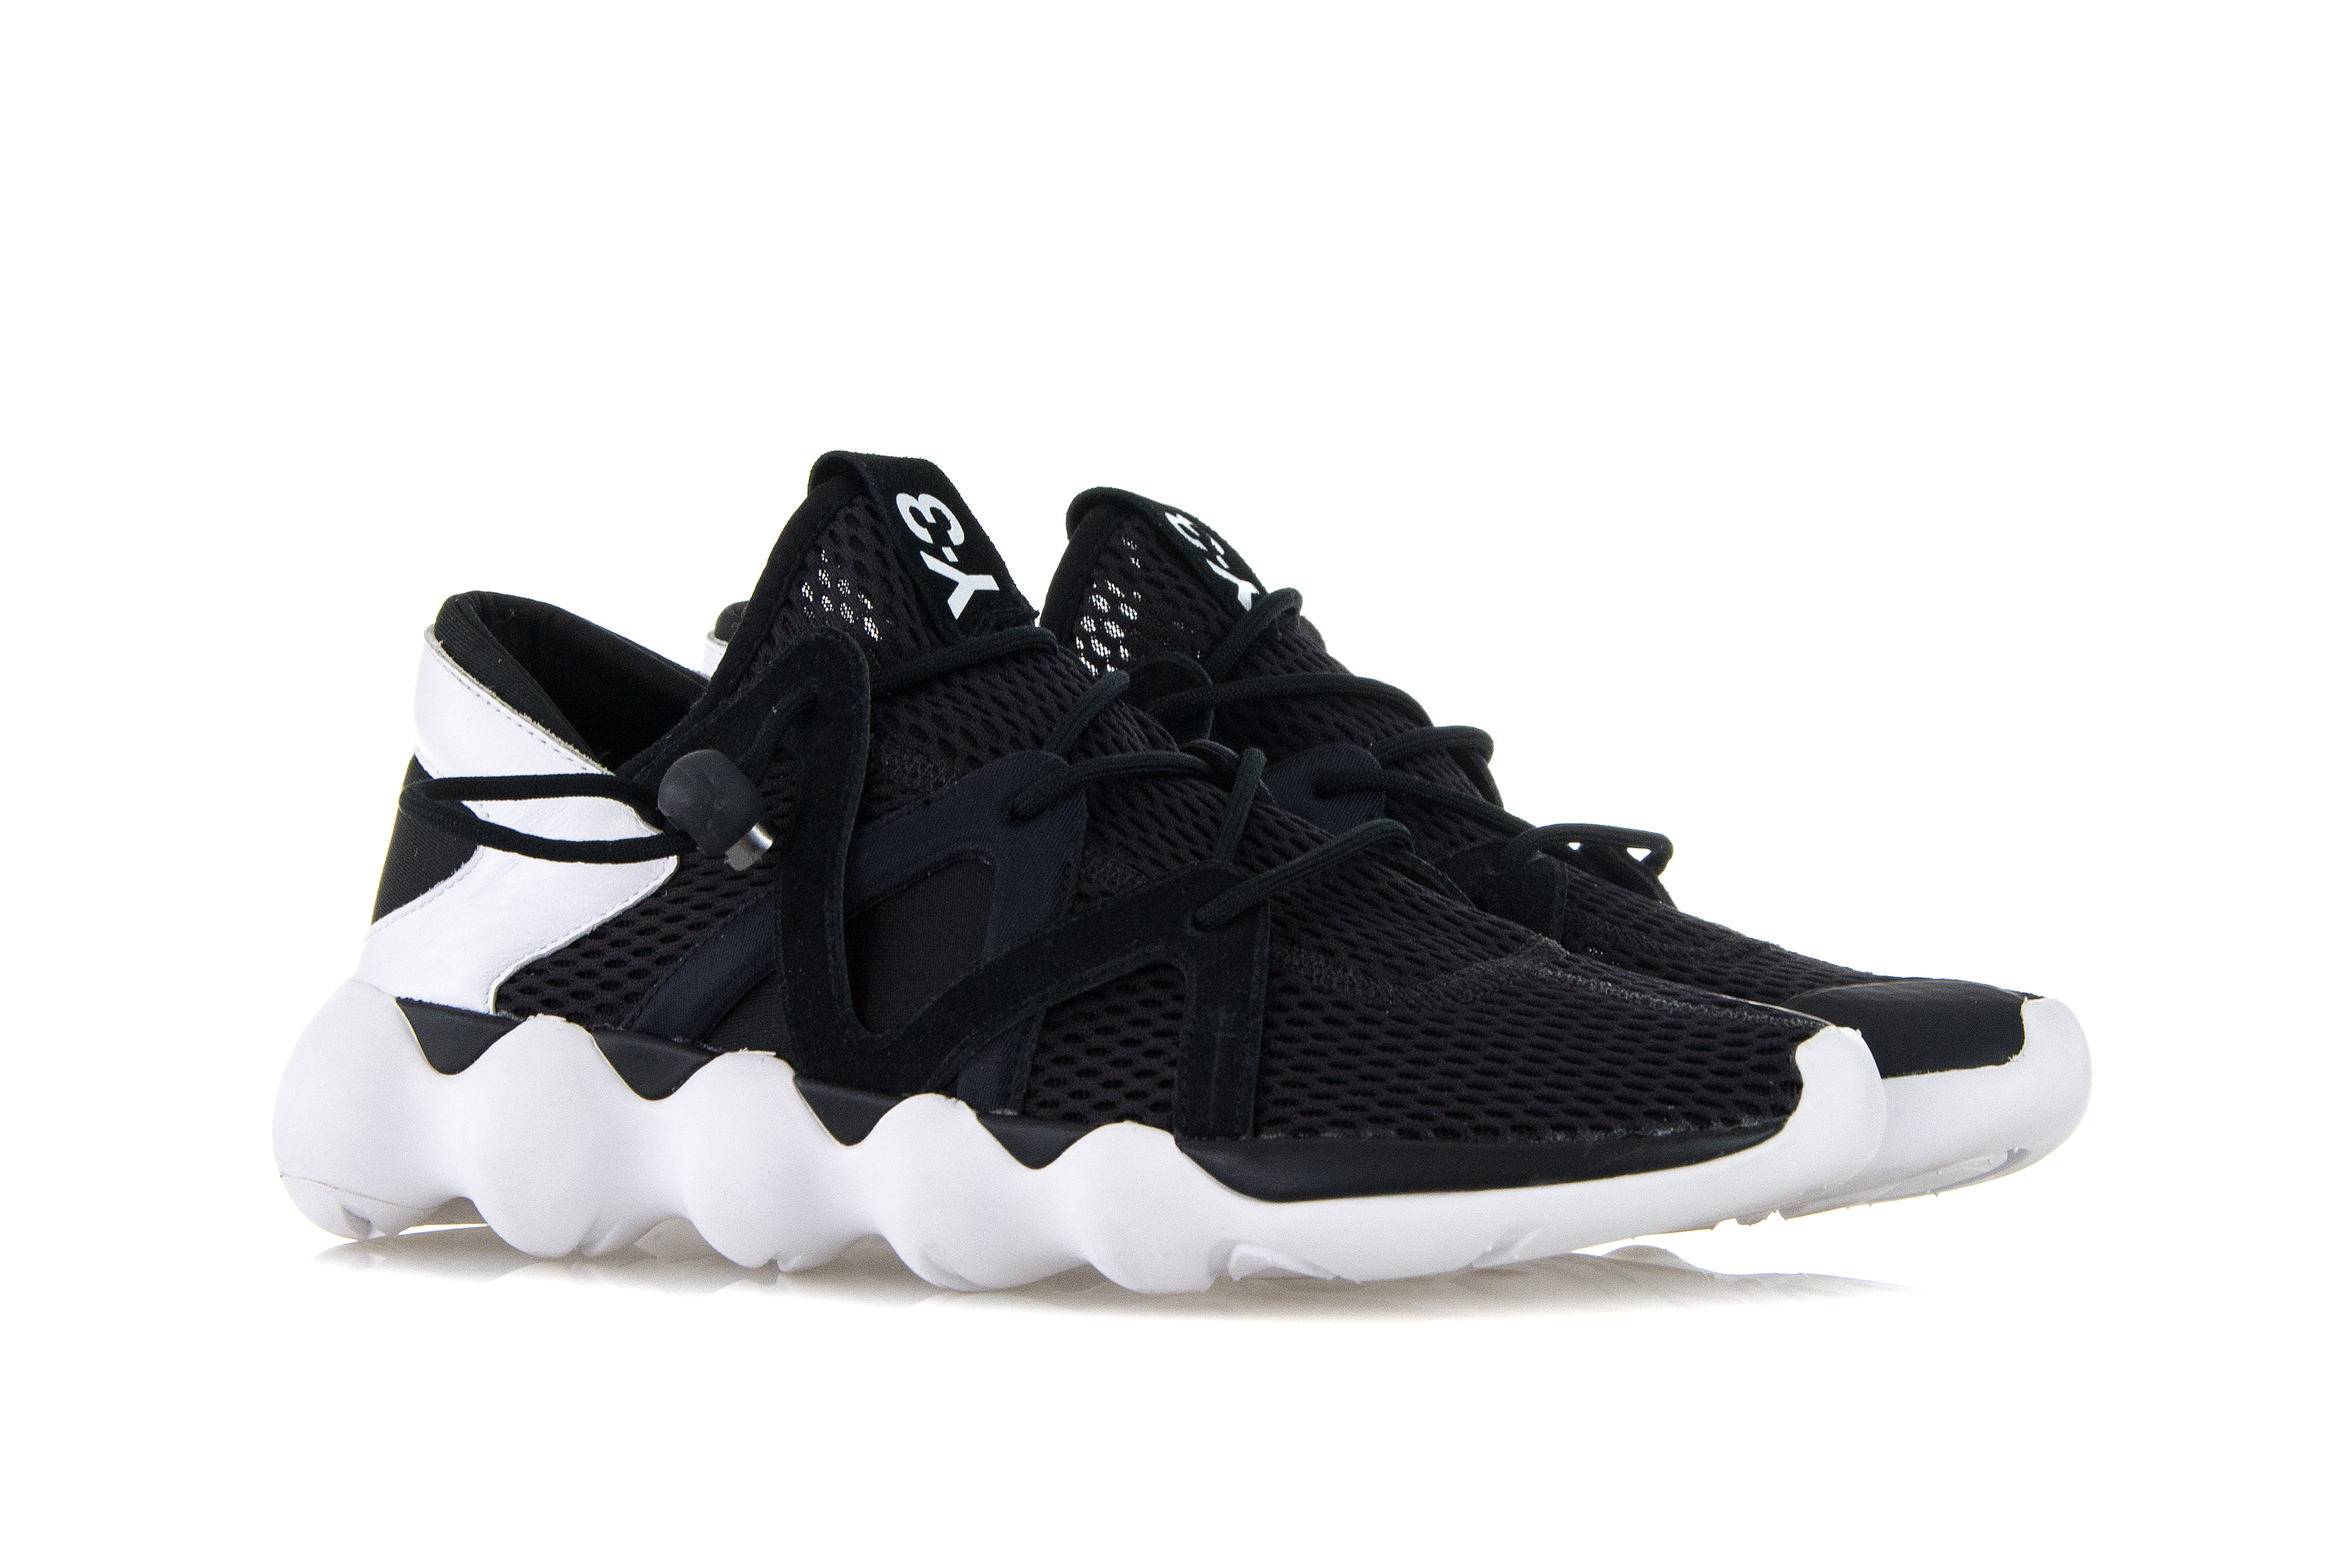 d0f281e67dfa Details about ADIDAS Y-3 Mens Shoes Sneakers KYUJO LOW Black Mesh Trainers  YOHJI YAMAMOTO